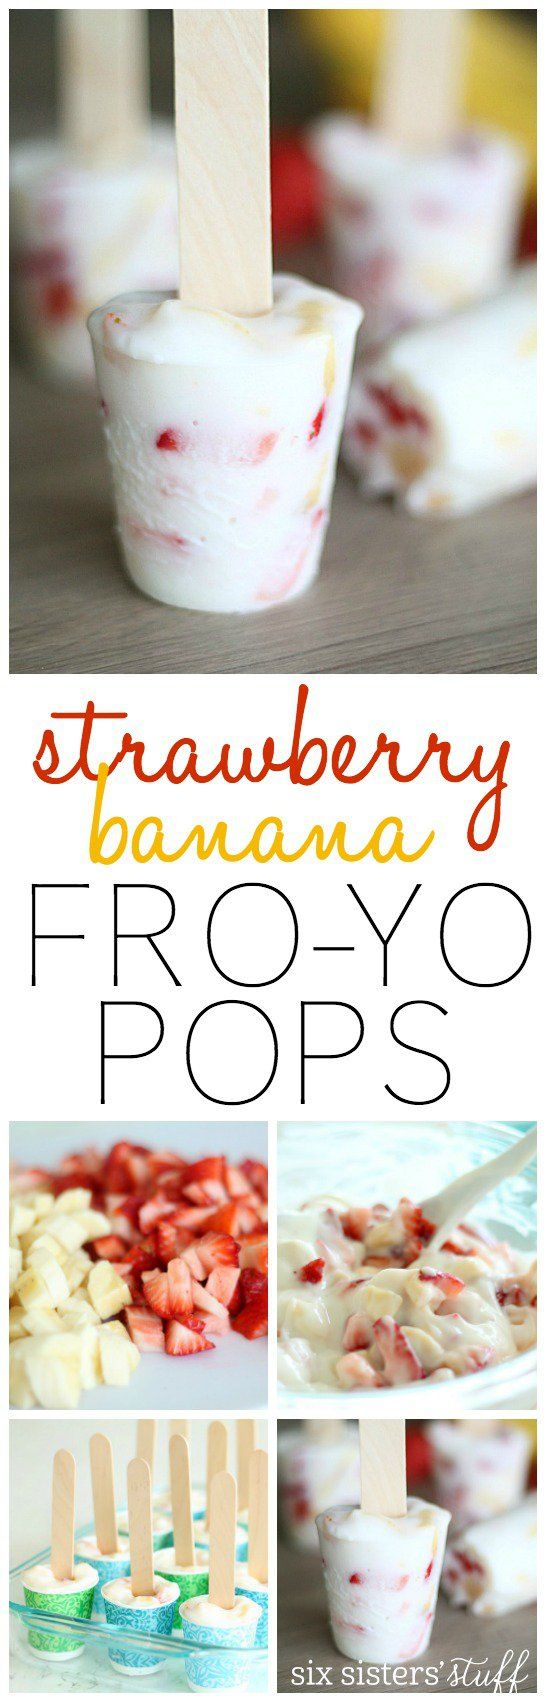 Strawberry Banana Frozen Yogurt Pops from SixSistersStuff.com | Your kids will love this  simple, healthy after school snack!